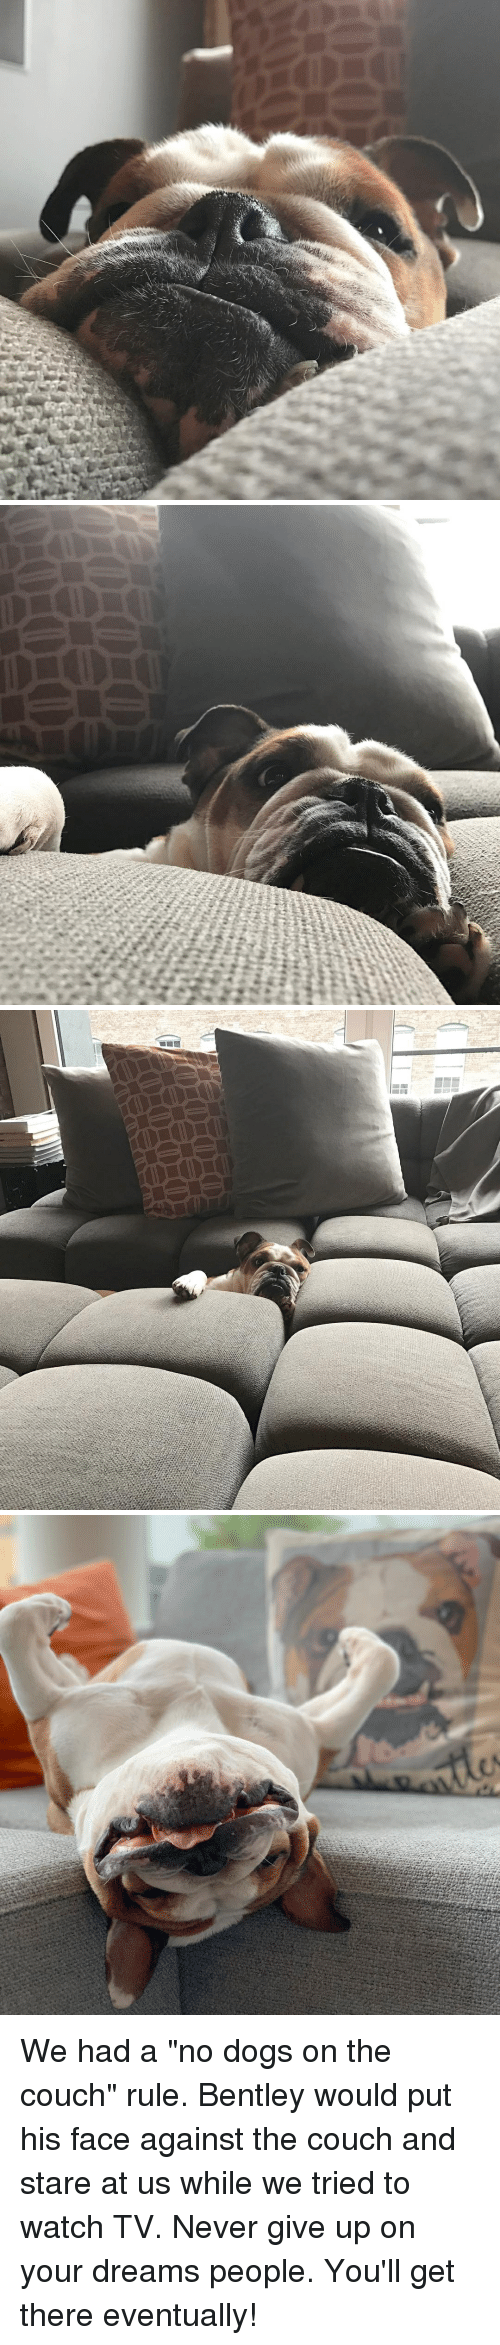 """We Tried: We had a """"no dogs on the couch"""" rule. Bentley would put his face against the couch and stare at us while we tried to watch TV. Never give up on your dreams people. You'll get there eventually!"""